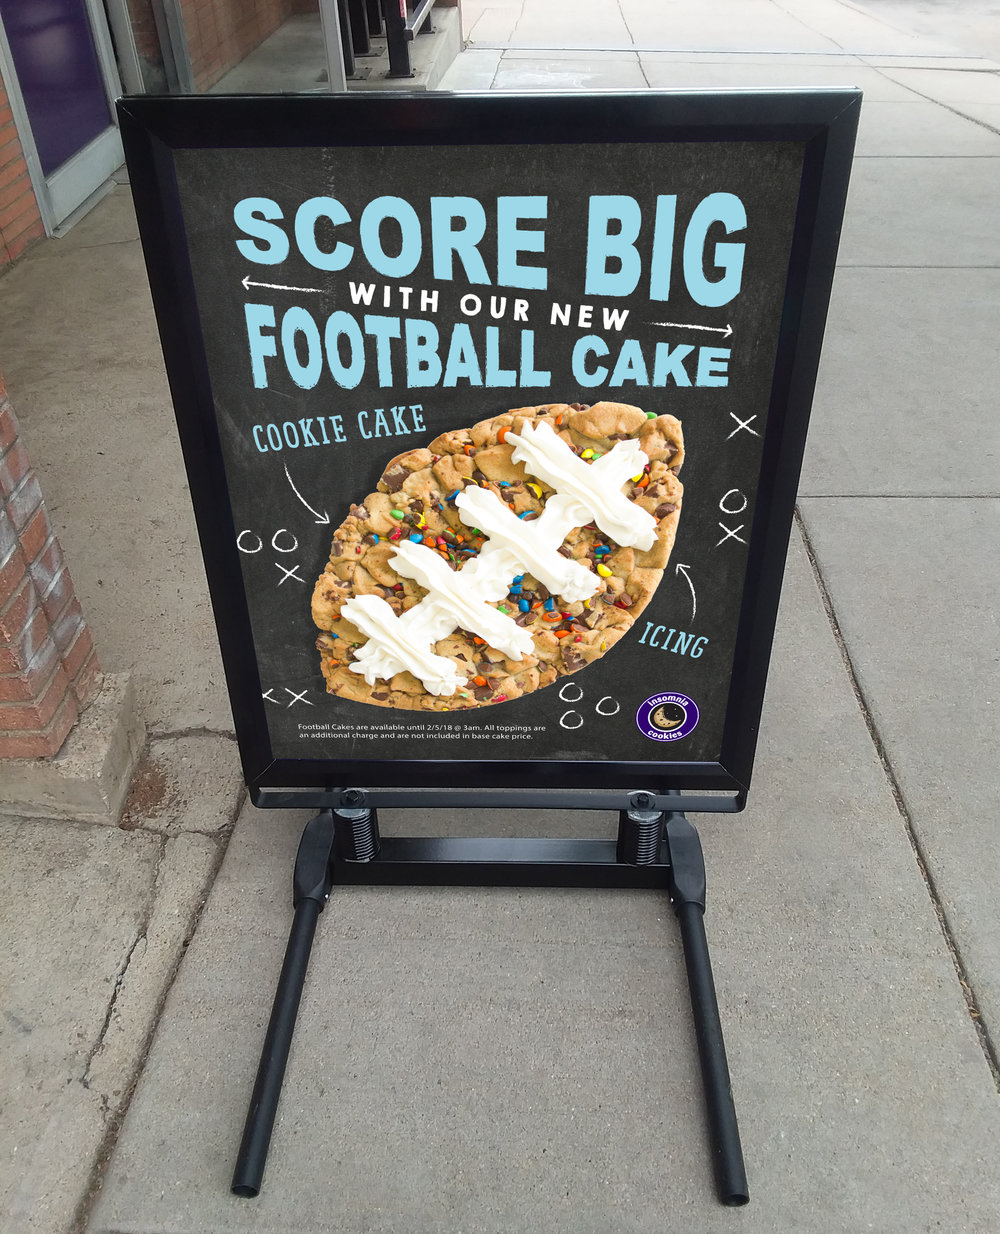 Football Cakes launch exterior promotional collateral